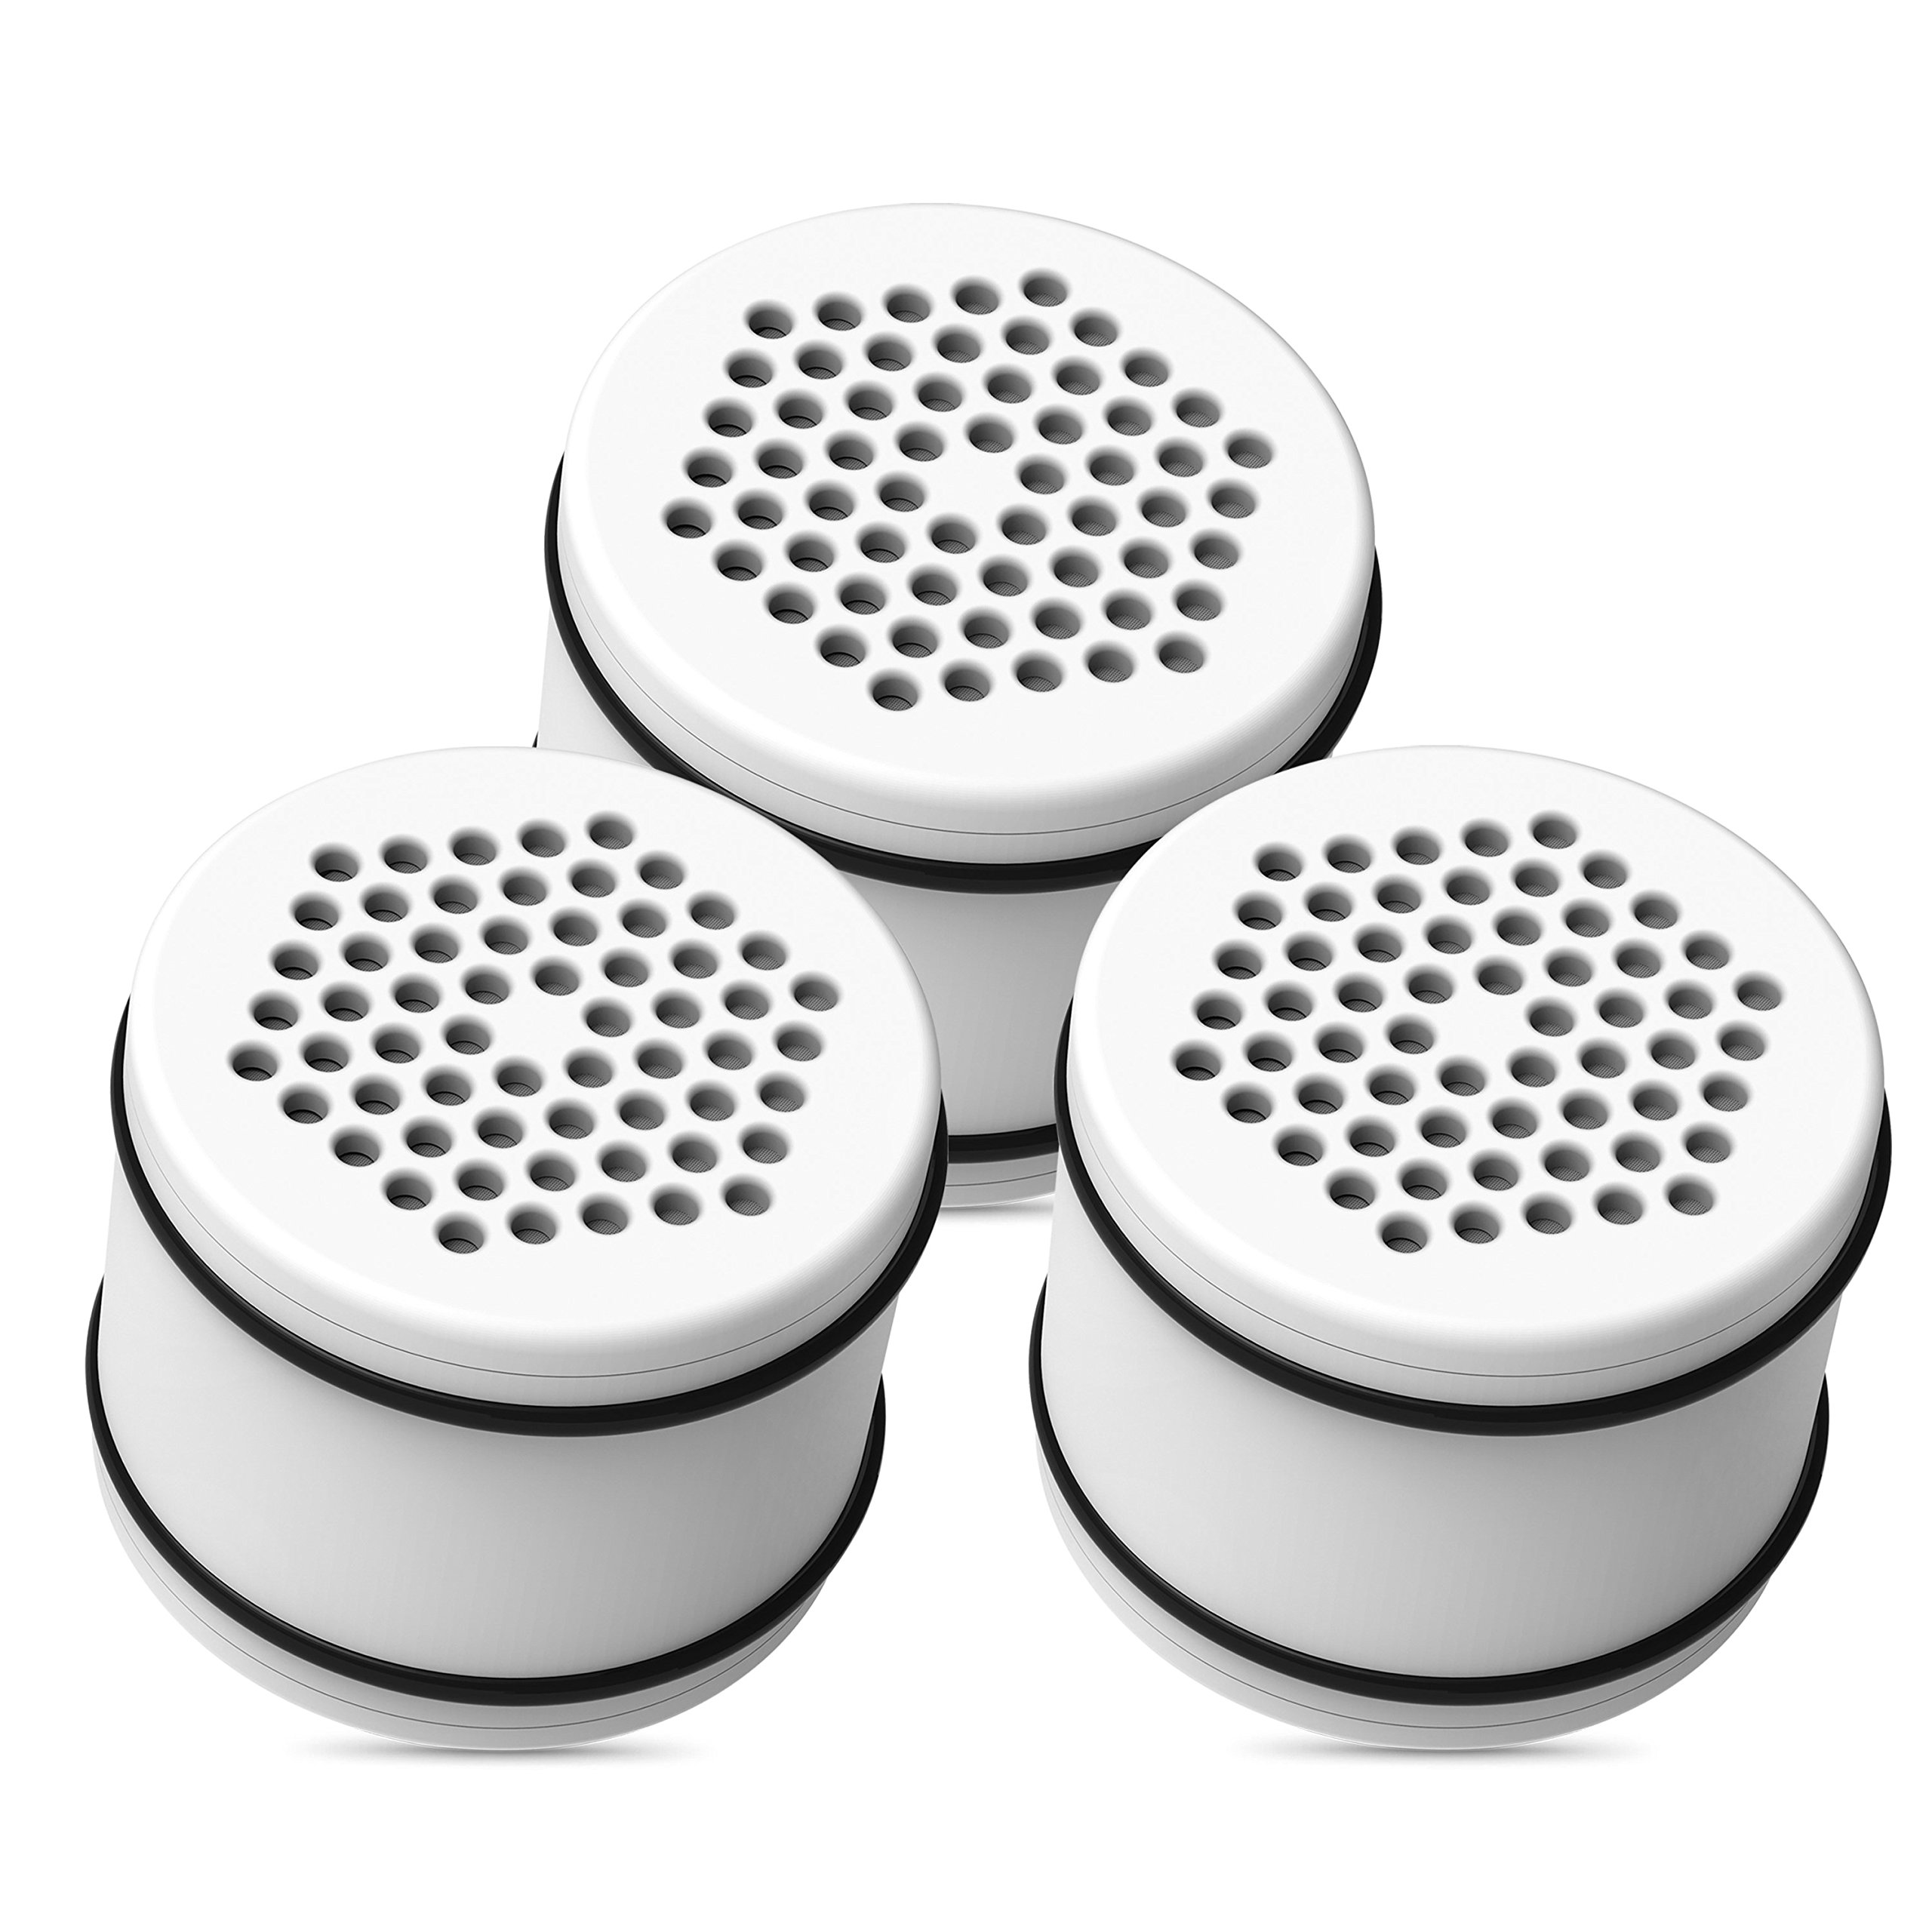 Waterdrop WHR-140 Shower Head Water Filter, Replacement for Culligan ISH-100, WHR-140, WSH-C125, HSH-C135, with Advanced KDF Filtration Material, Pack of 3 by Waterdrop